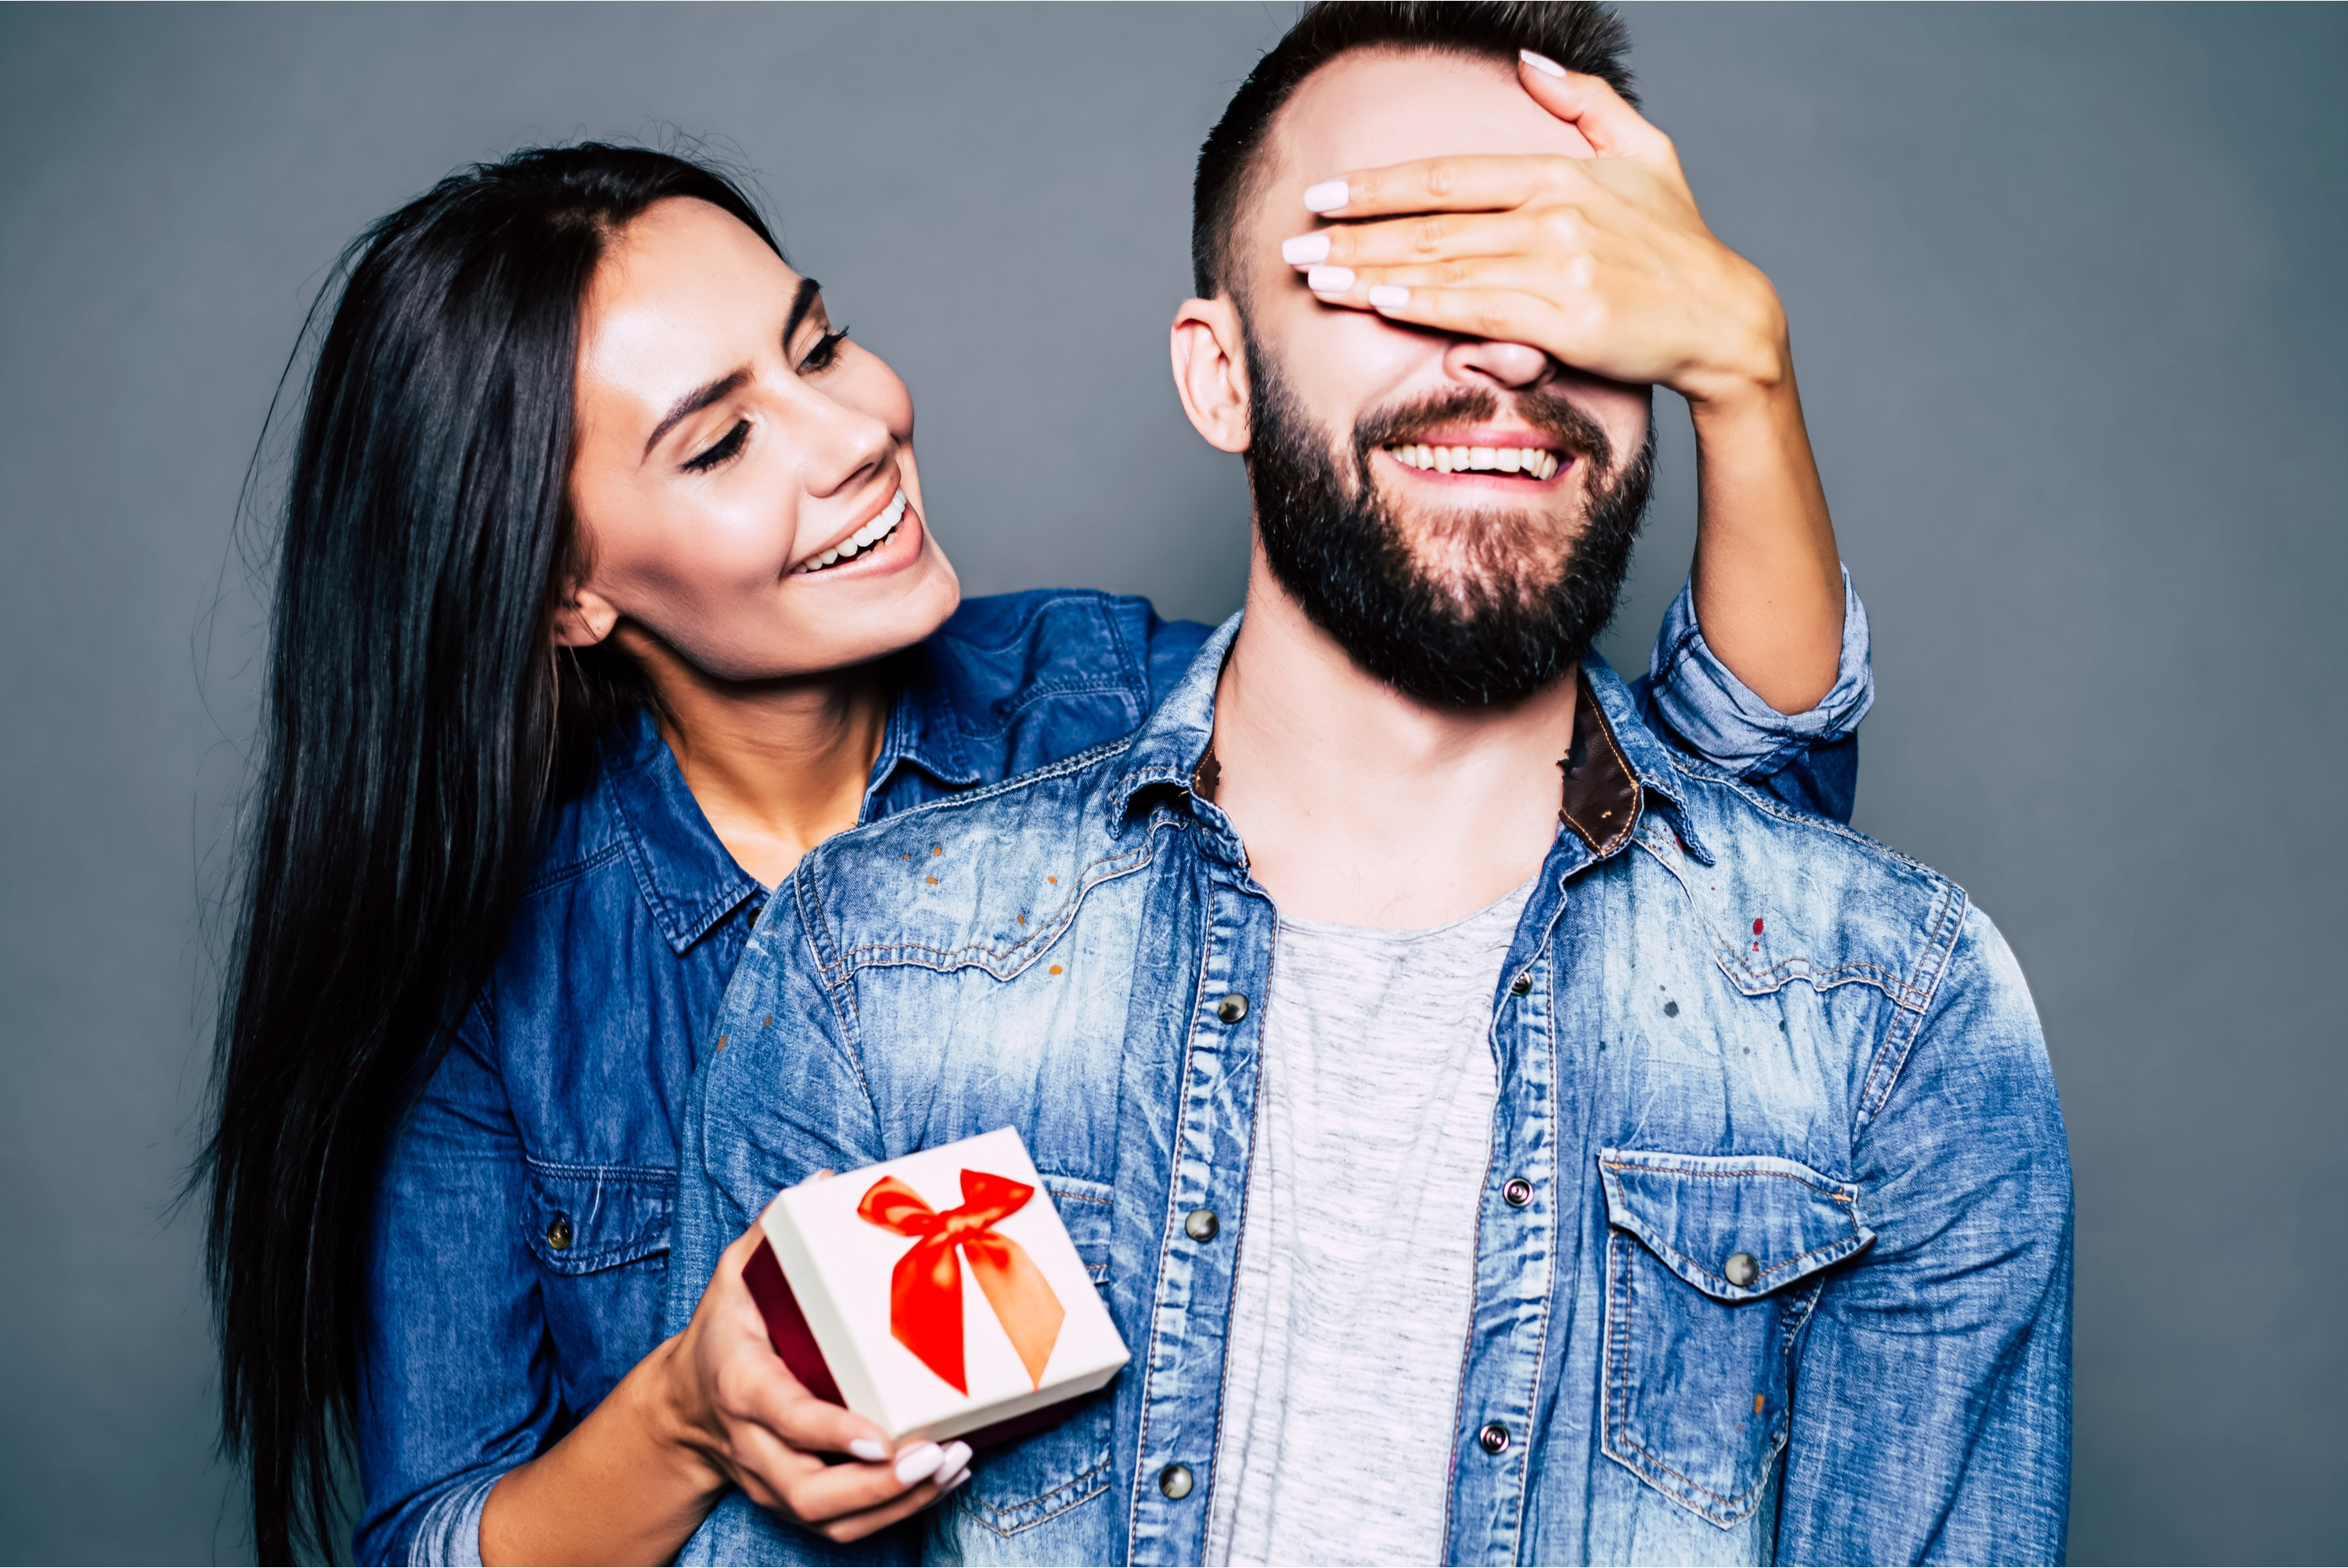 9 Valentine S Day Gift Ideas For Him On A Budget,Most Googled Question Right Now